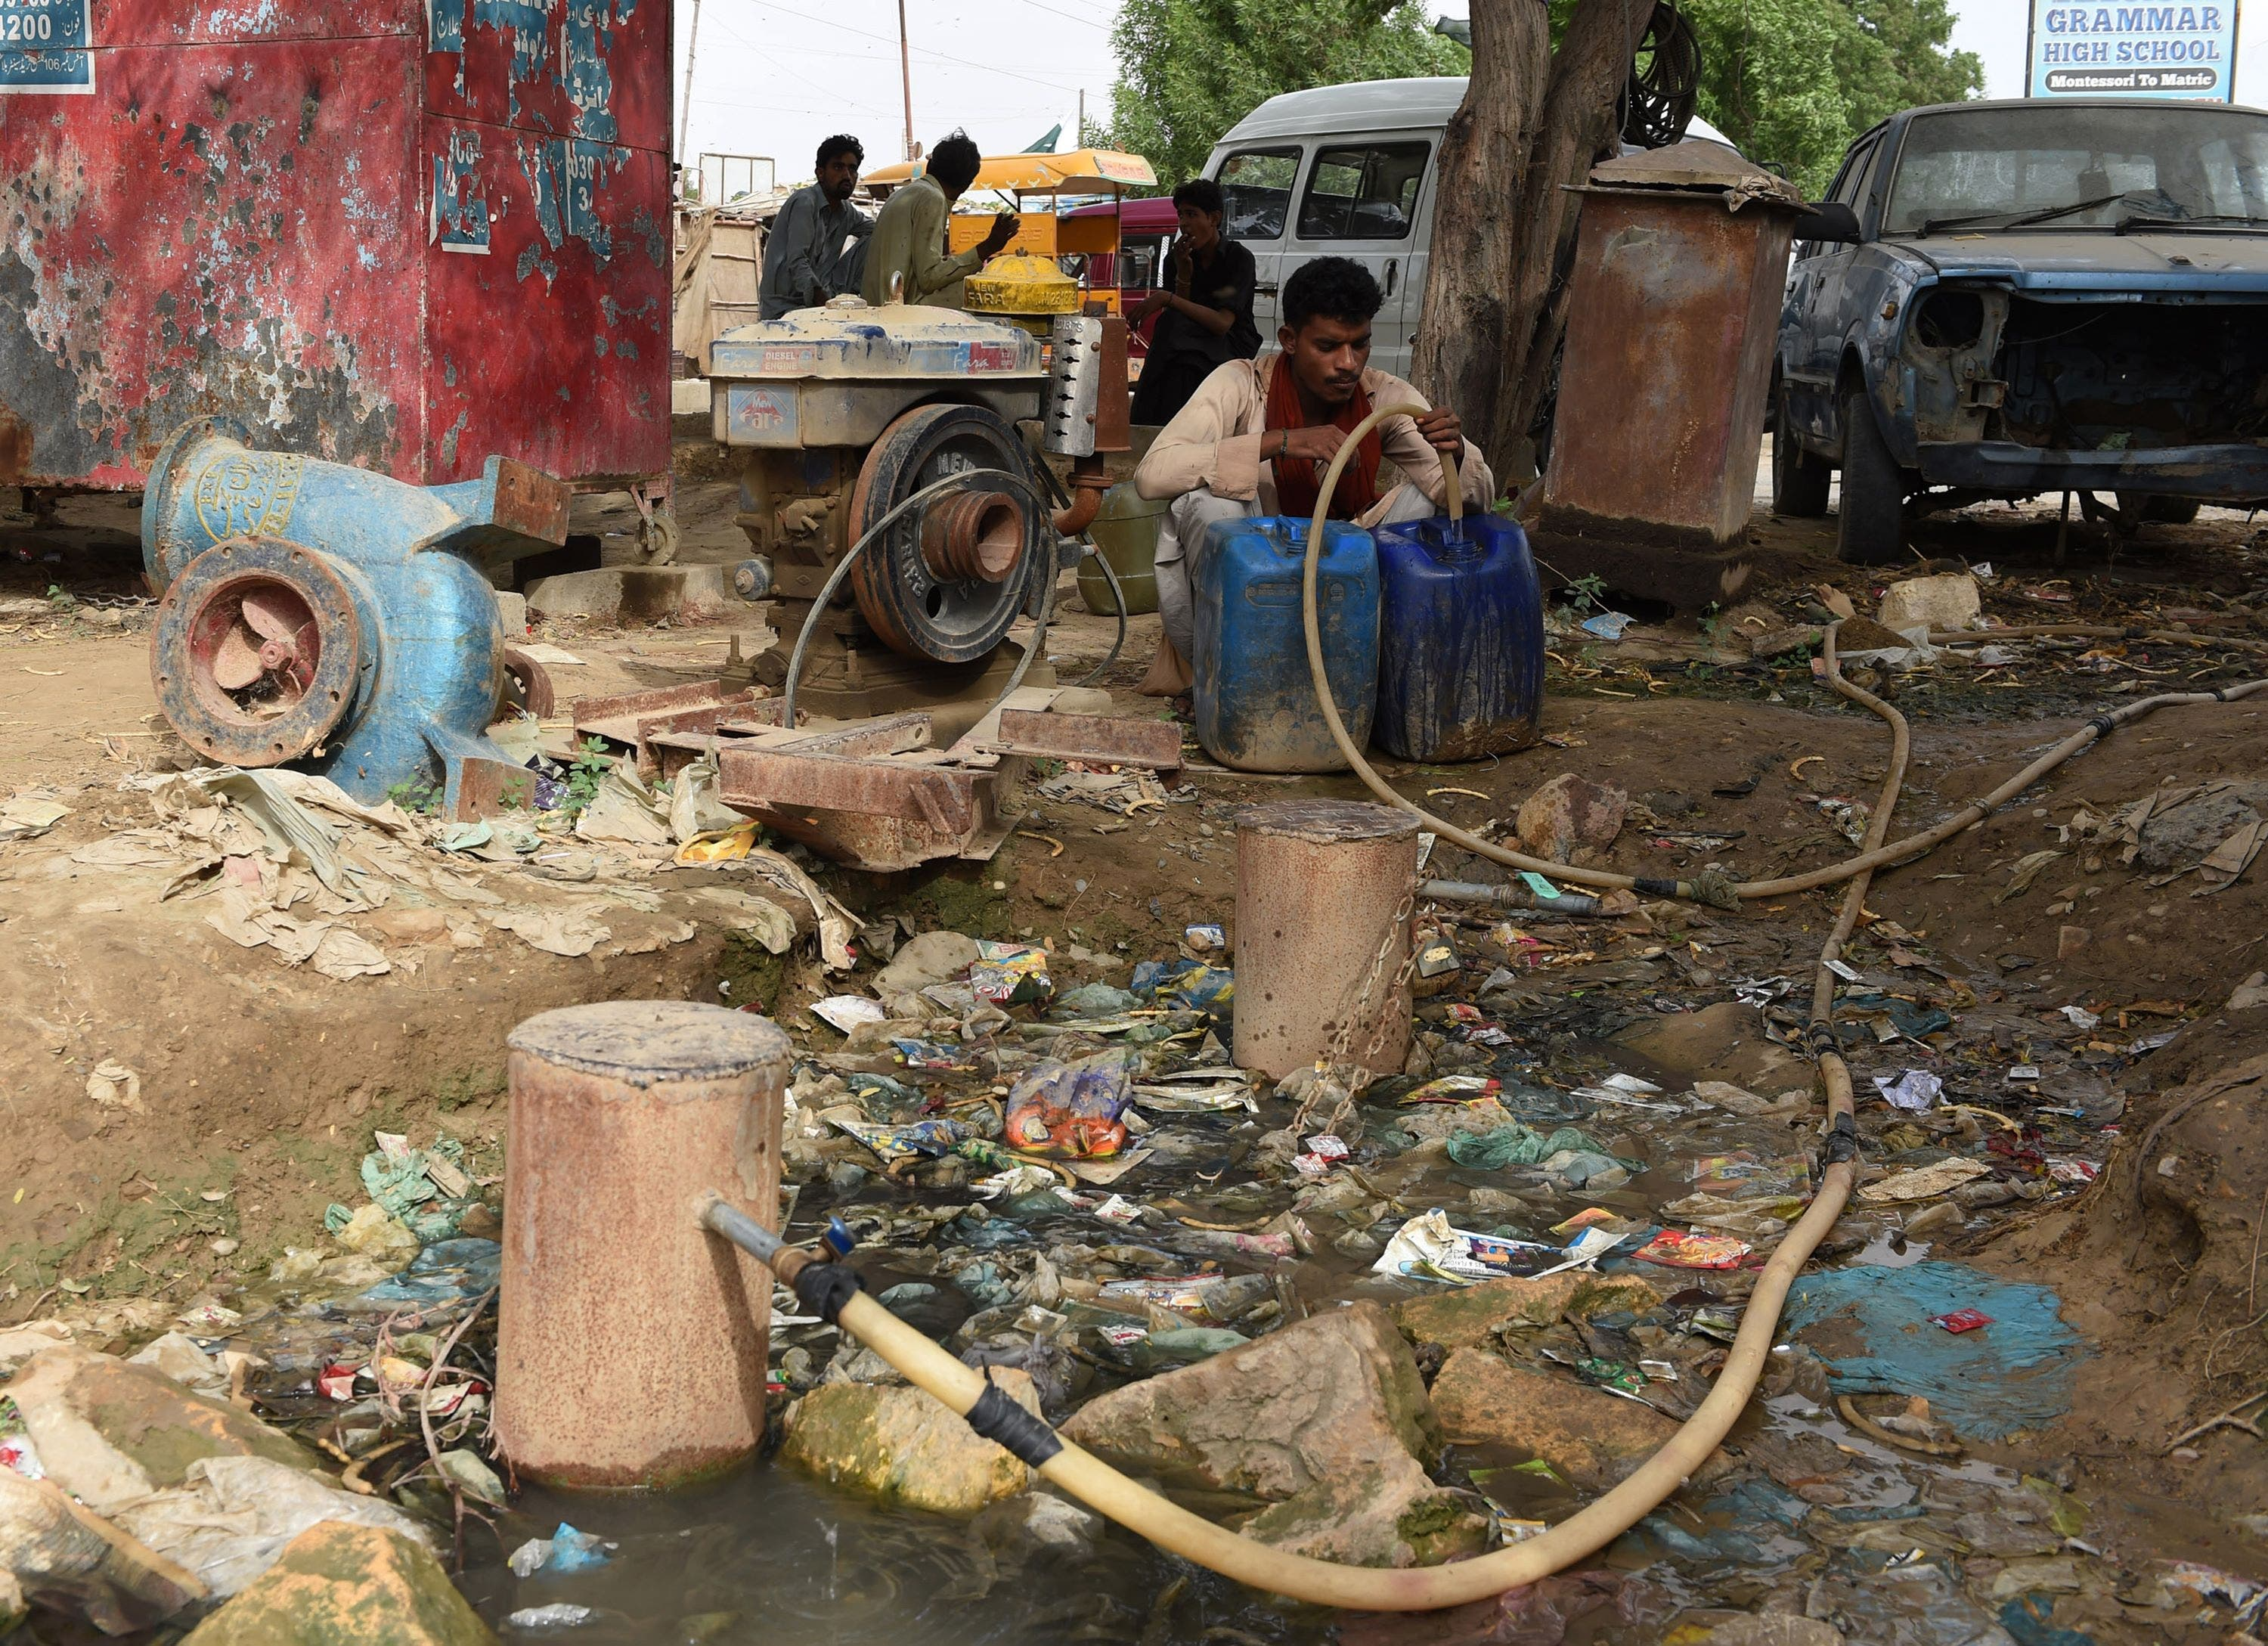 In this photograph taken on August 20, 2015, a Pakistani man fills a container with water in a slum area of Karachi.